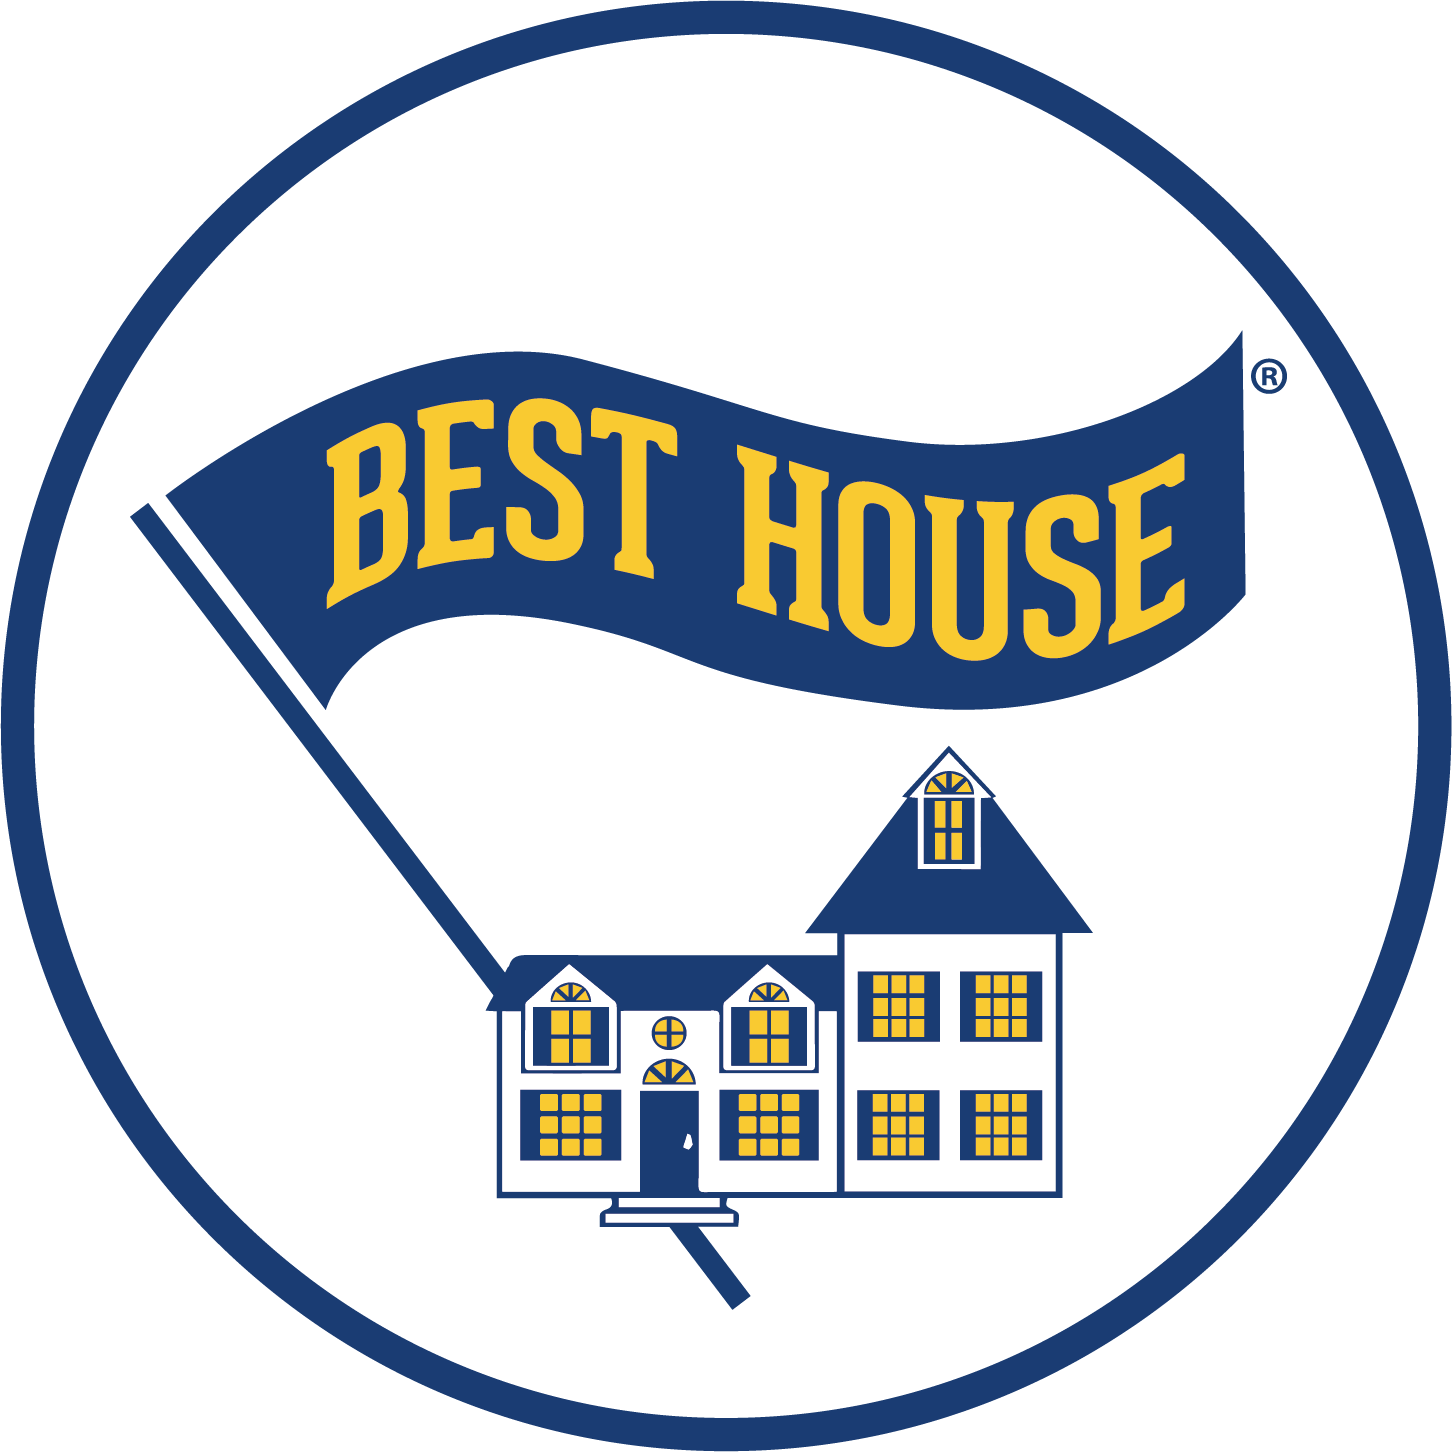 BEST HOUSE BEST CREDIT